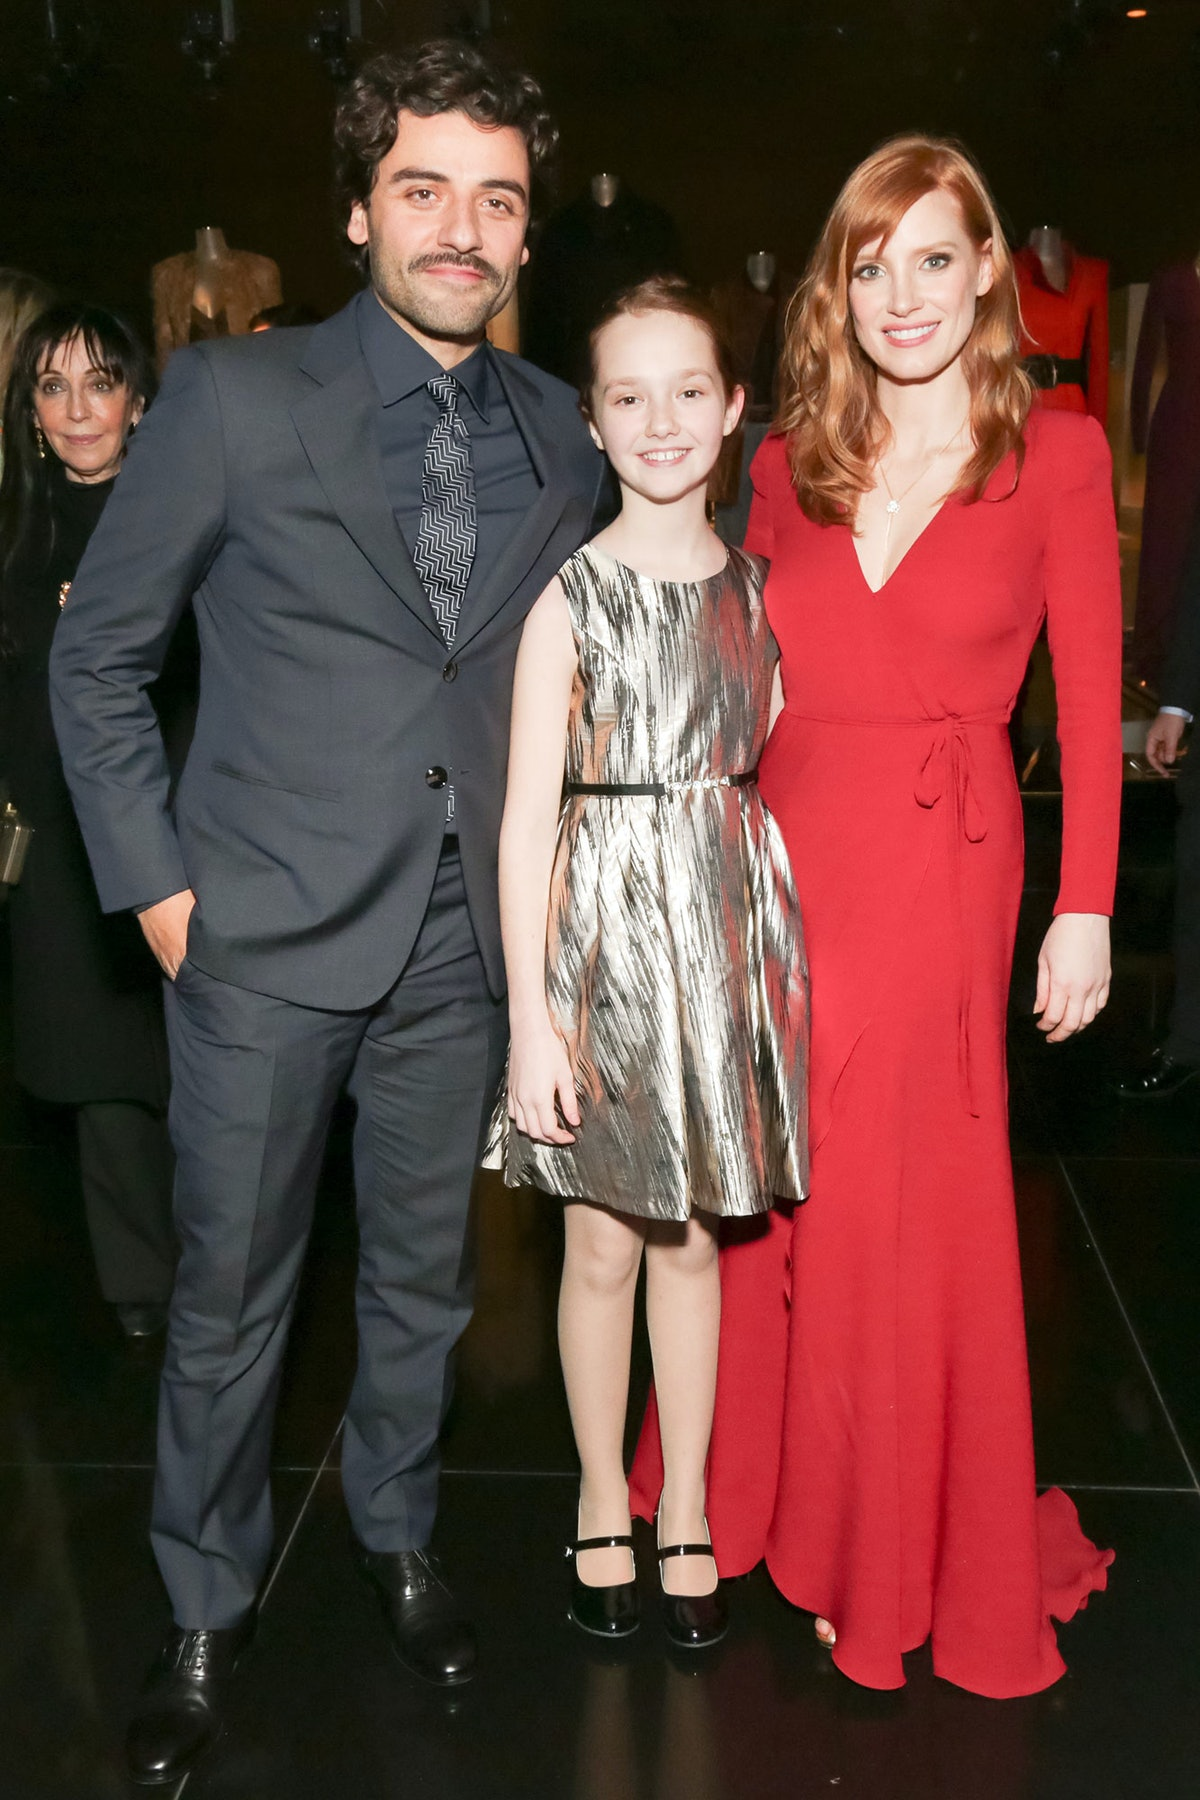 Oscar Isaac and Jessica Chastain